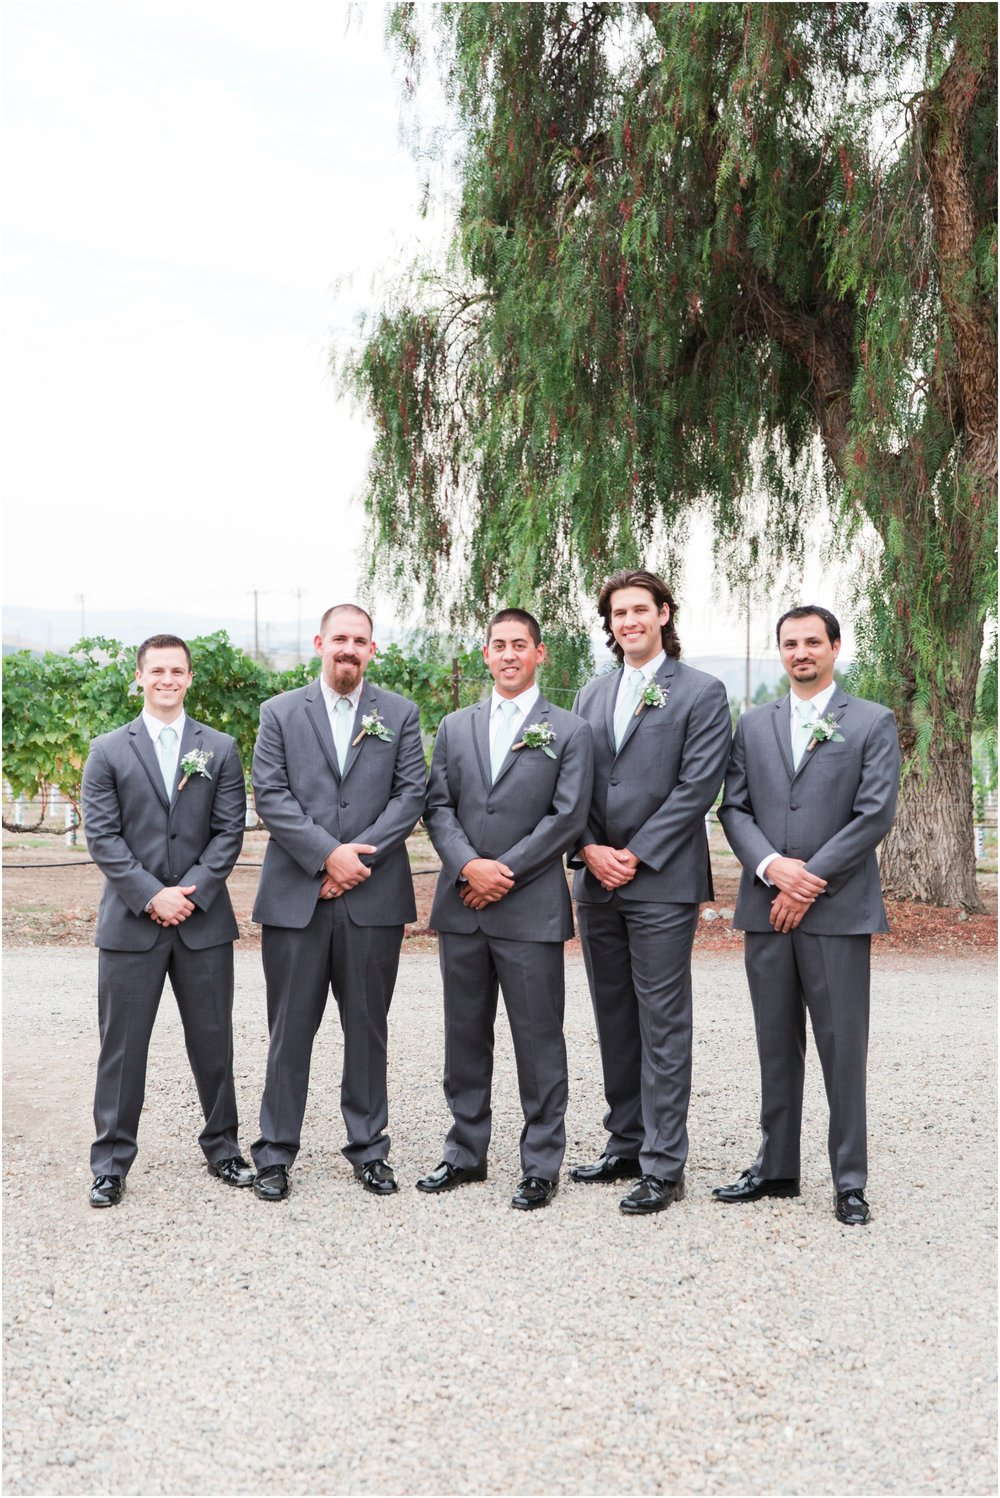 Retzlaff Winery wedding pictures by Briana Calderon Photography_2292.jpg